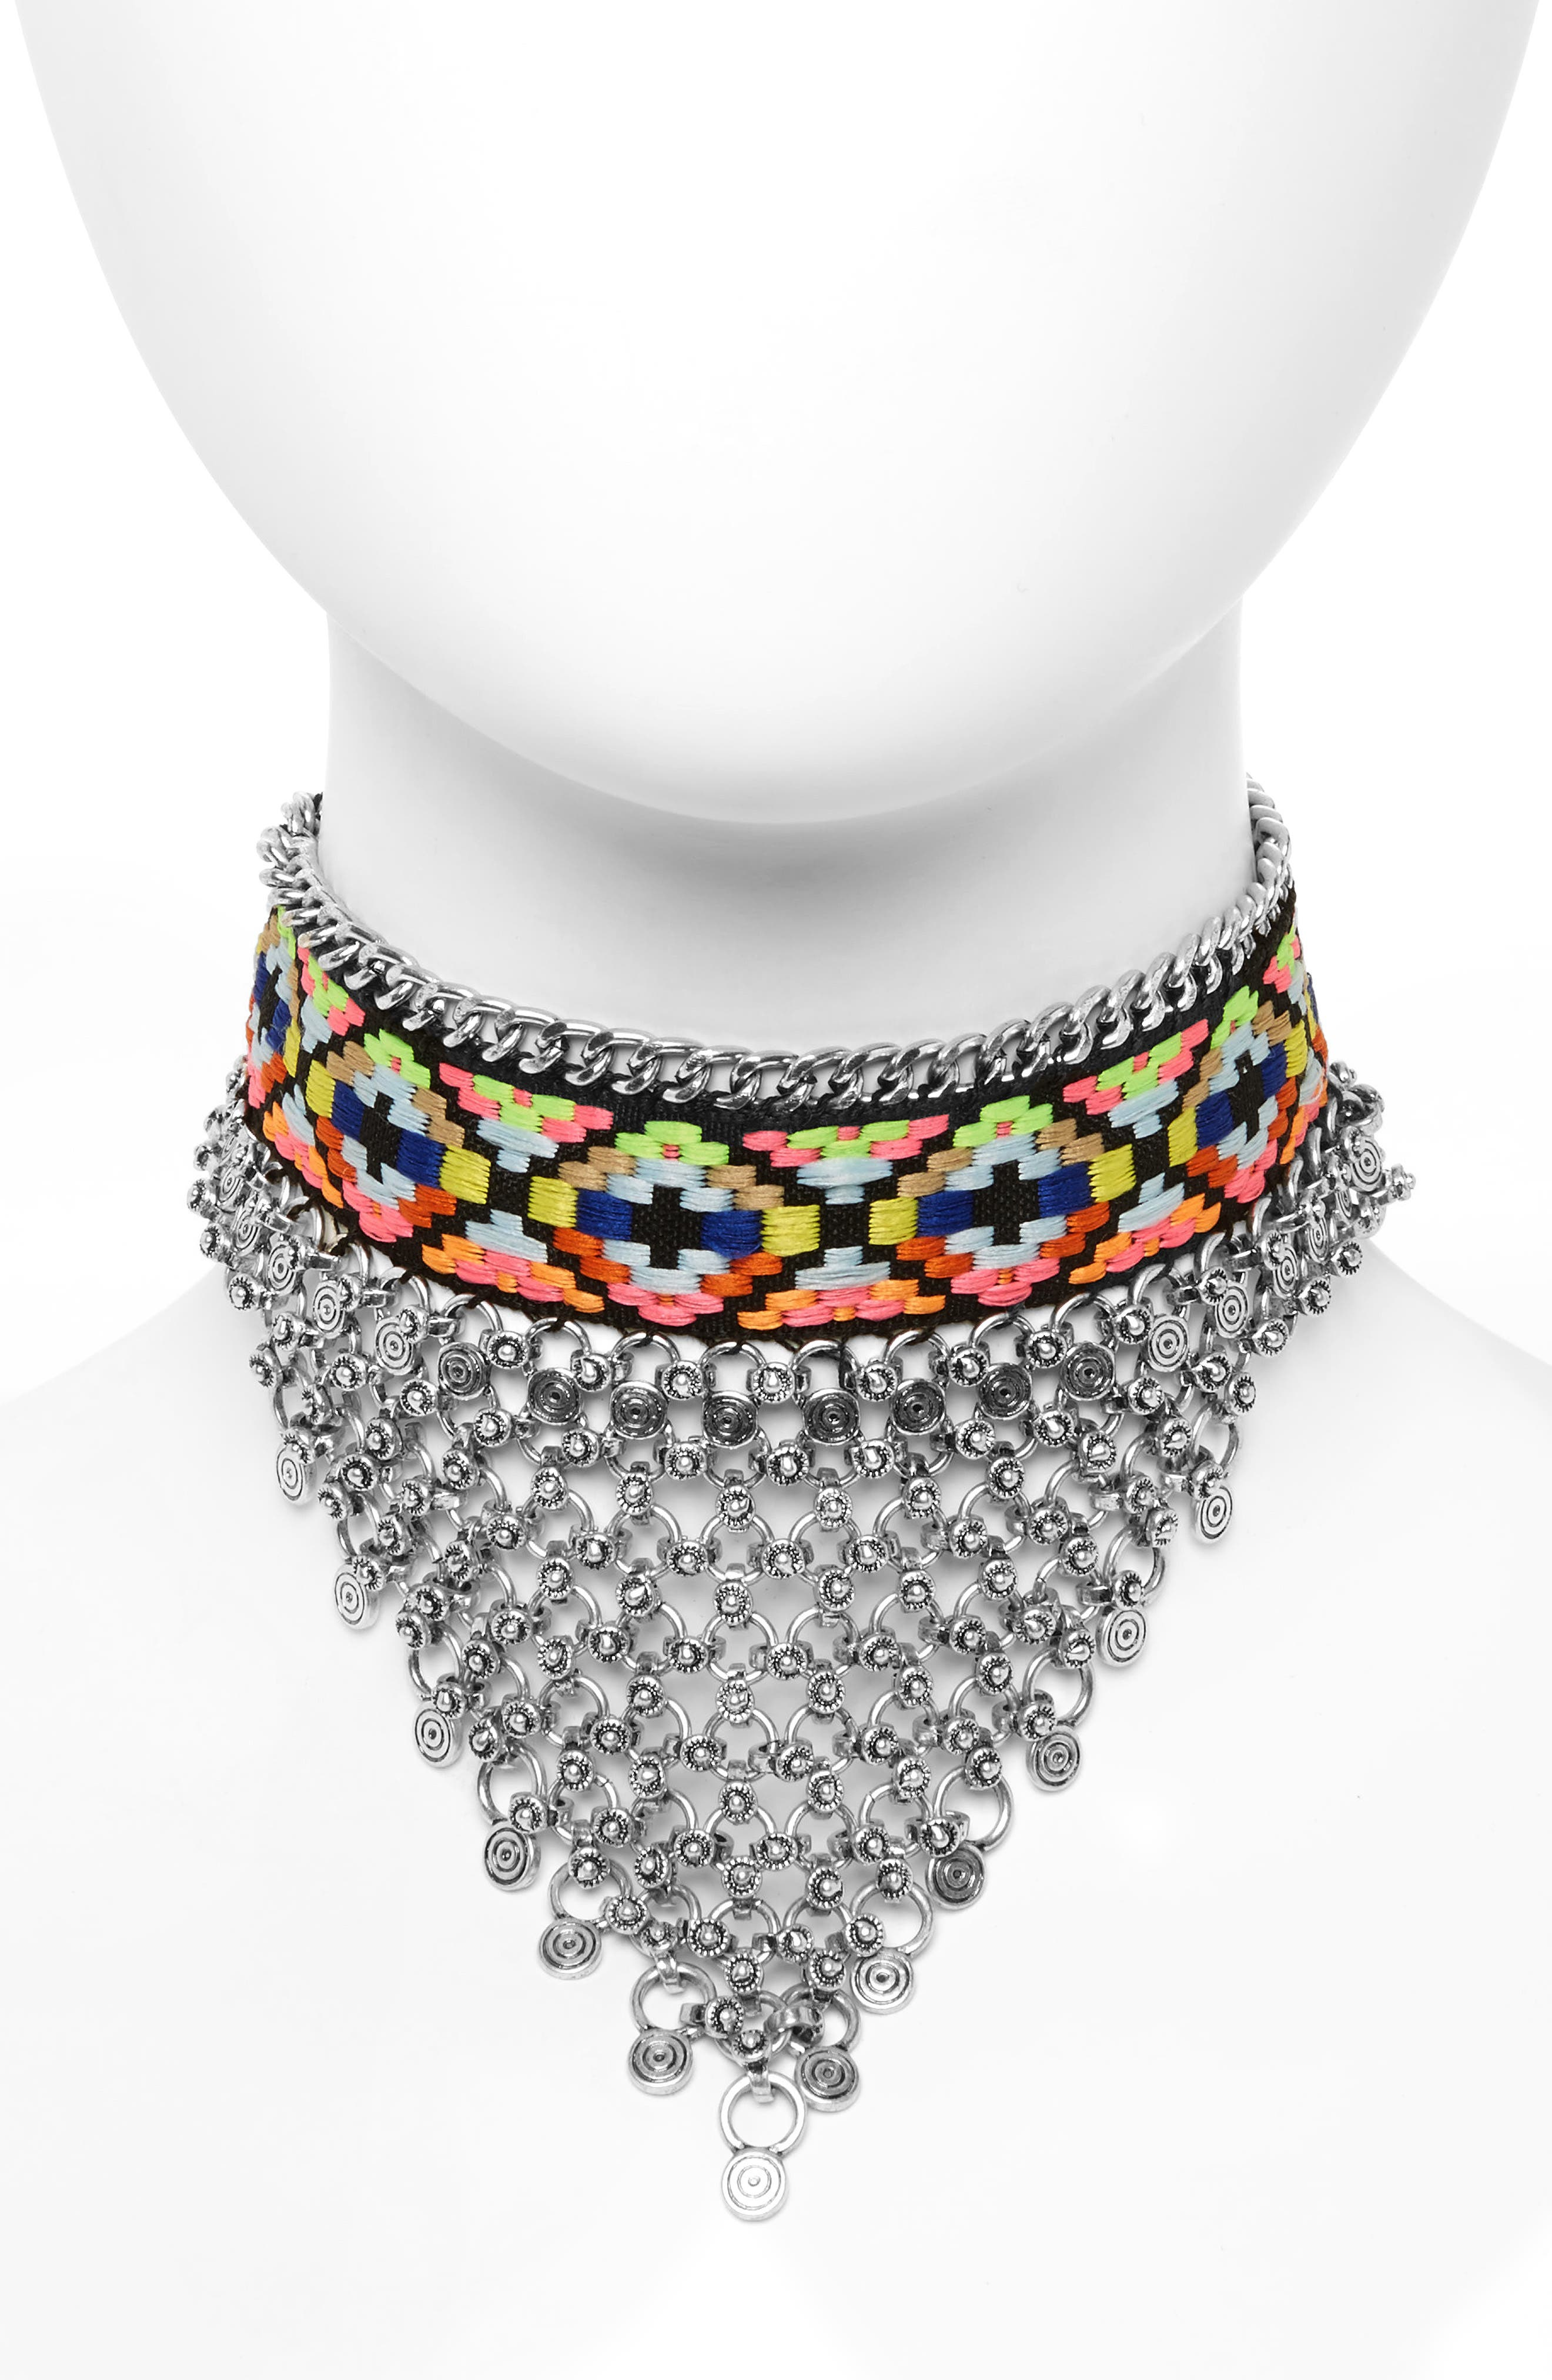 Topshop Woven Chainmail Choker